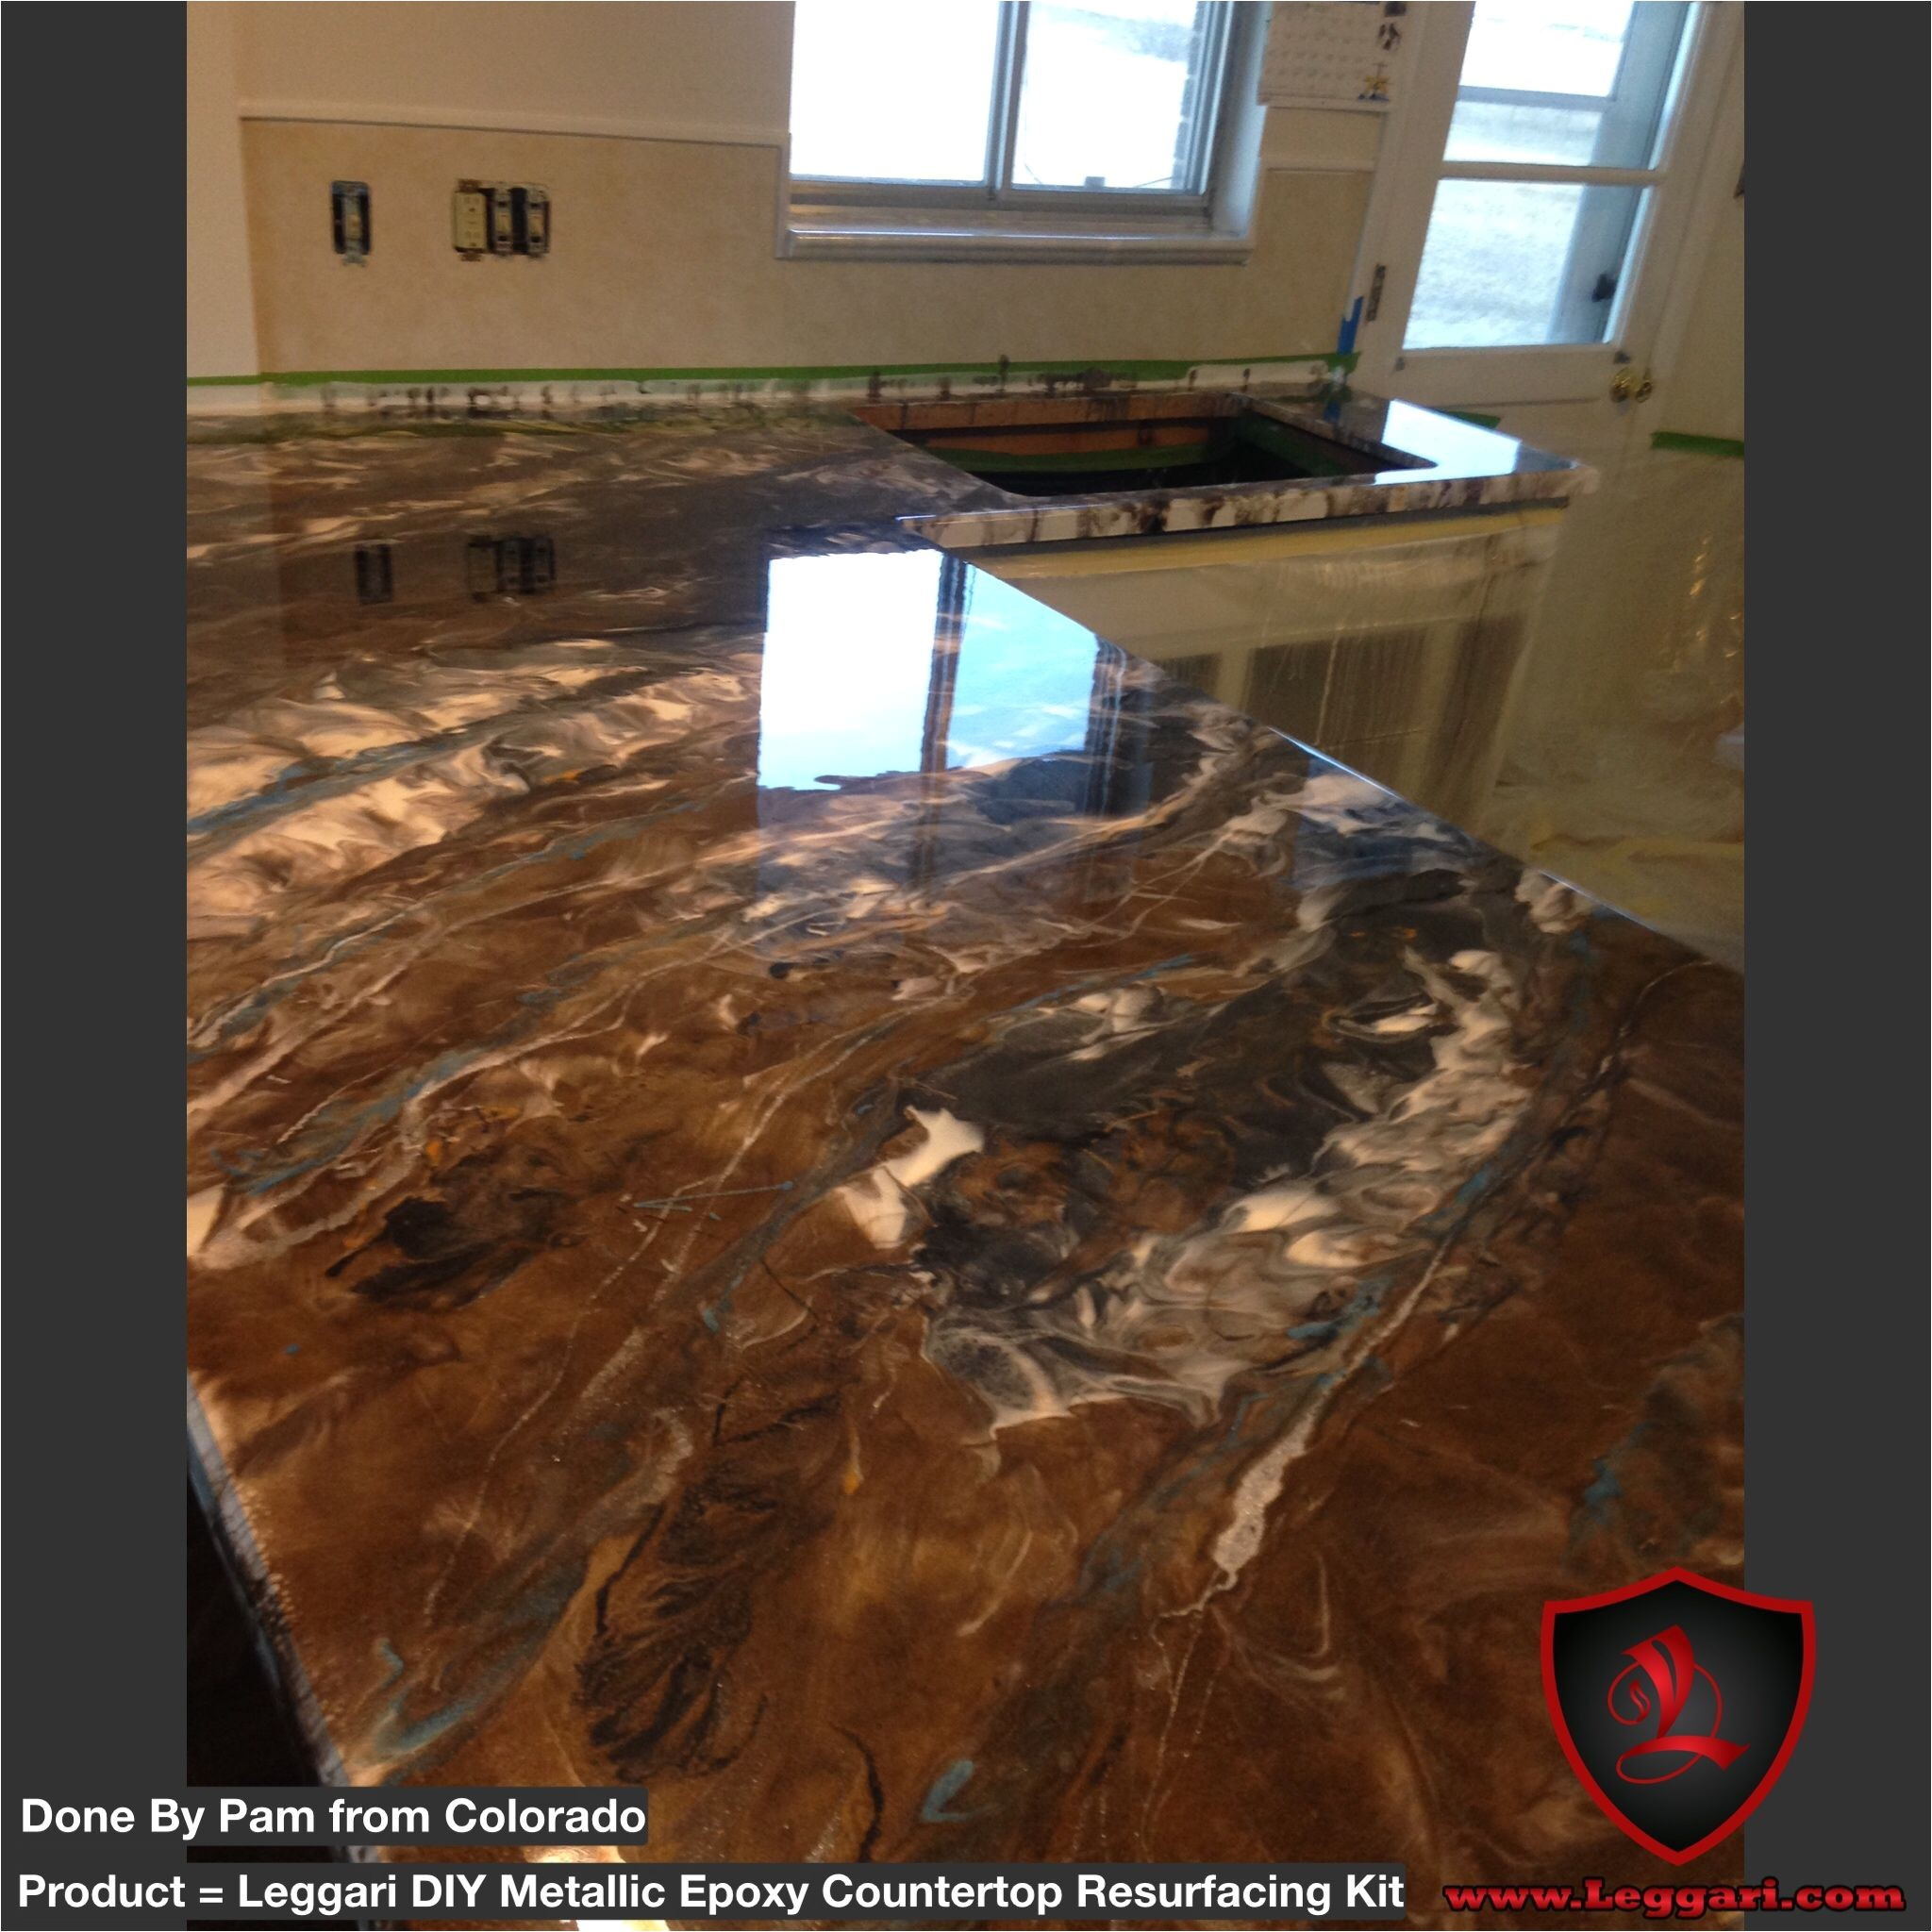 diy metallic epoxy countertop resurfacing kits homeimprovementkitchencountertops